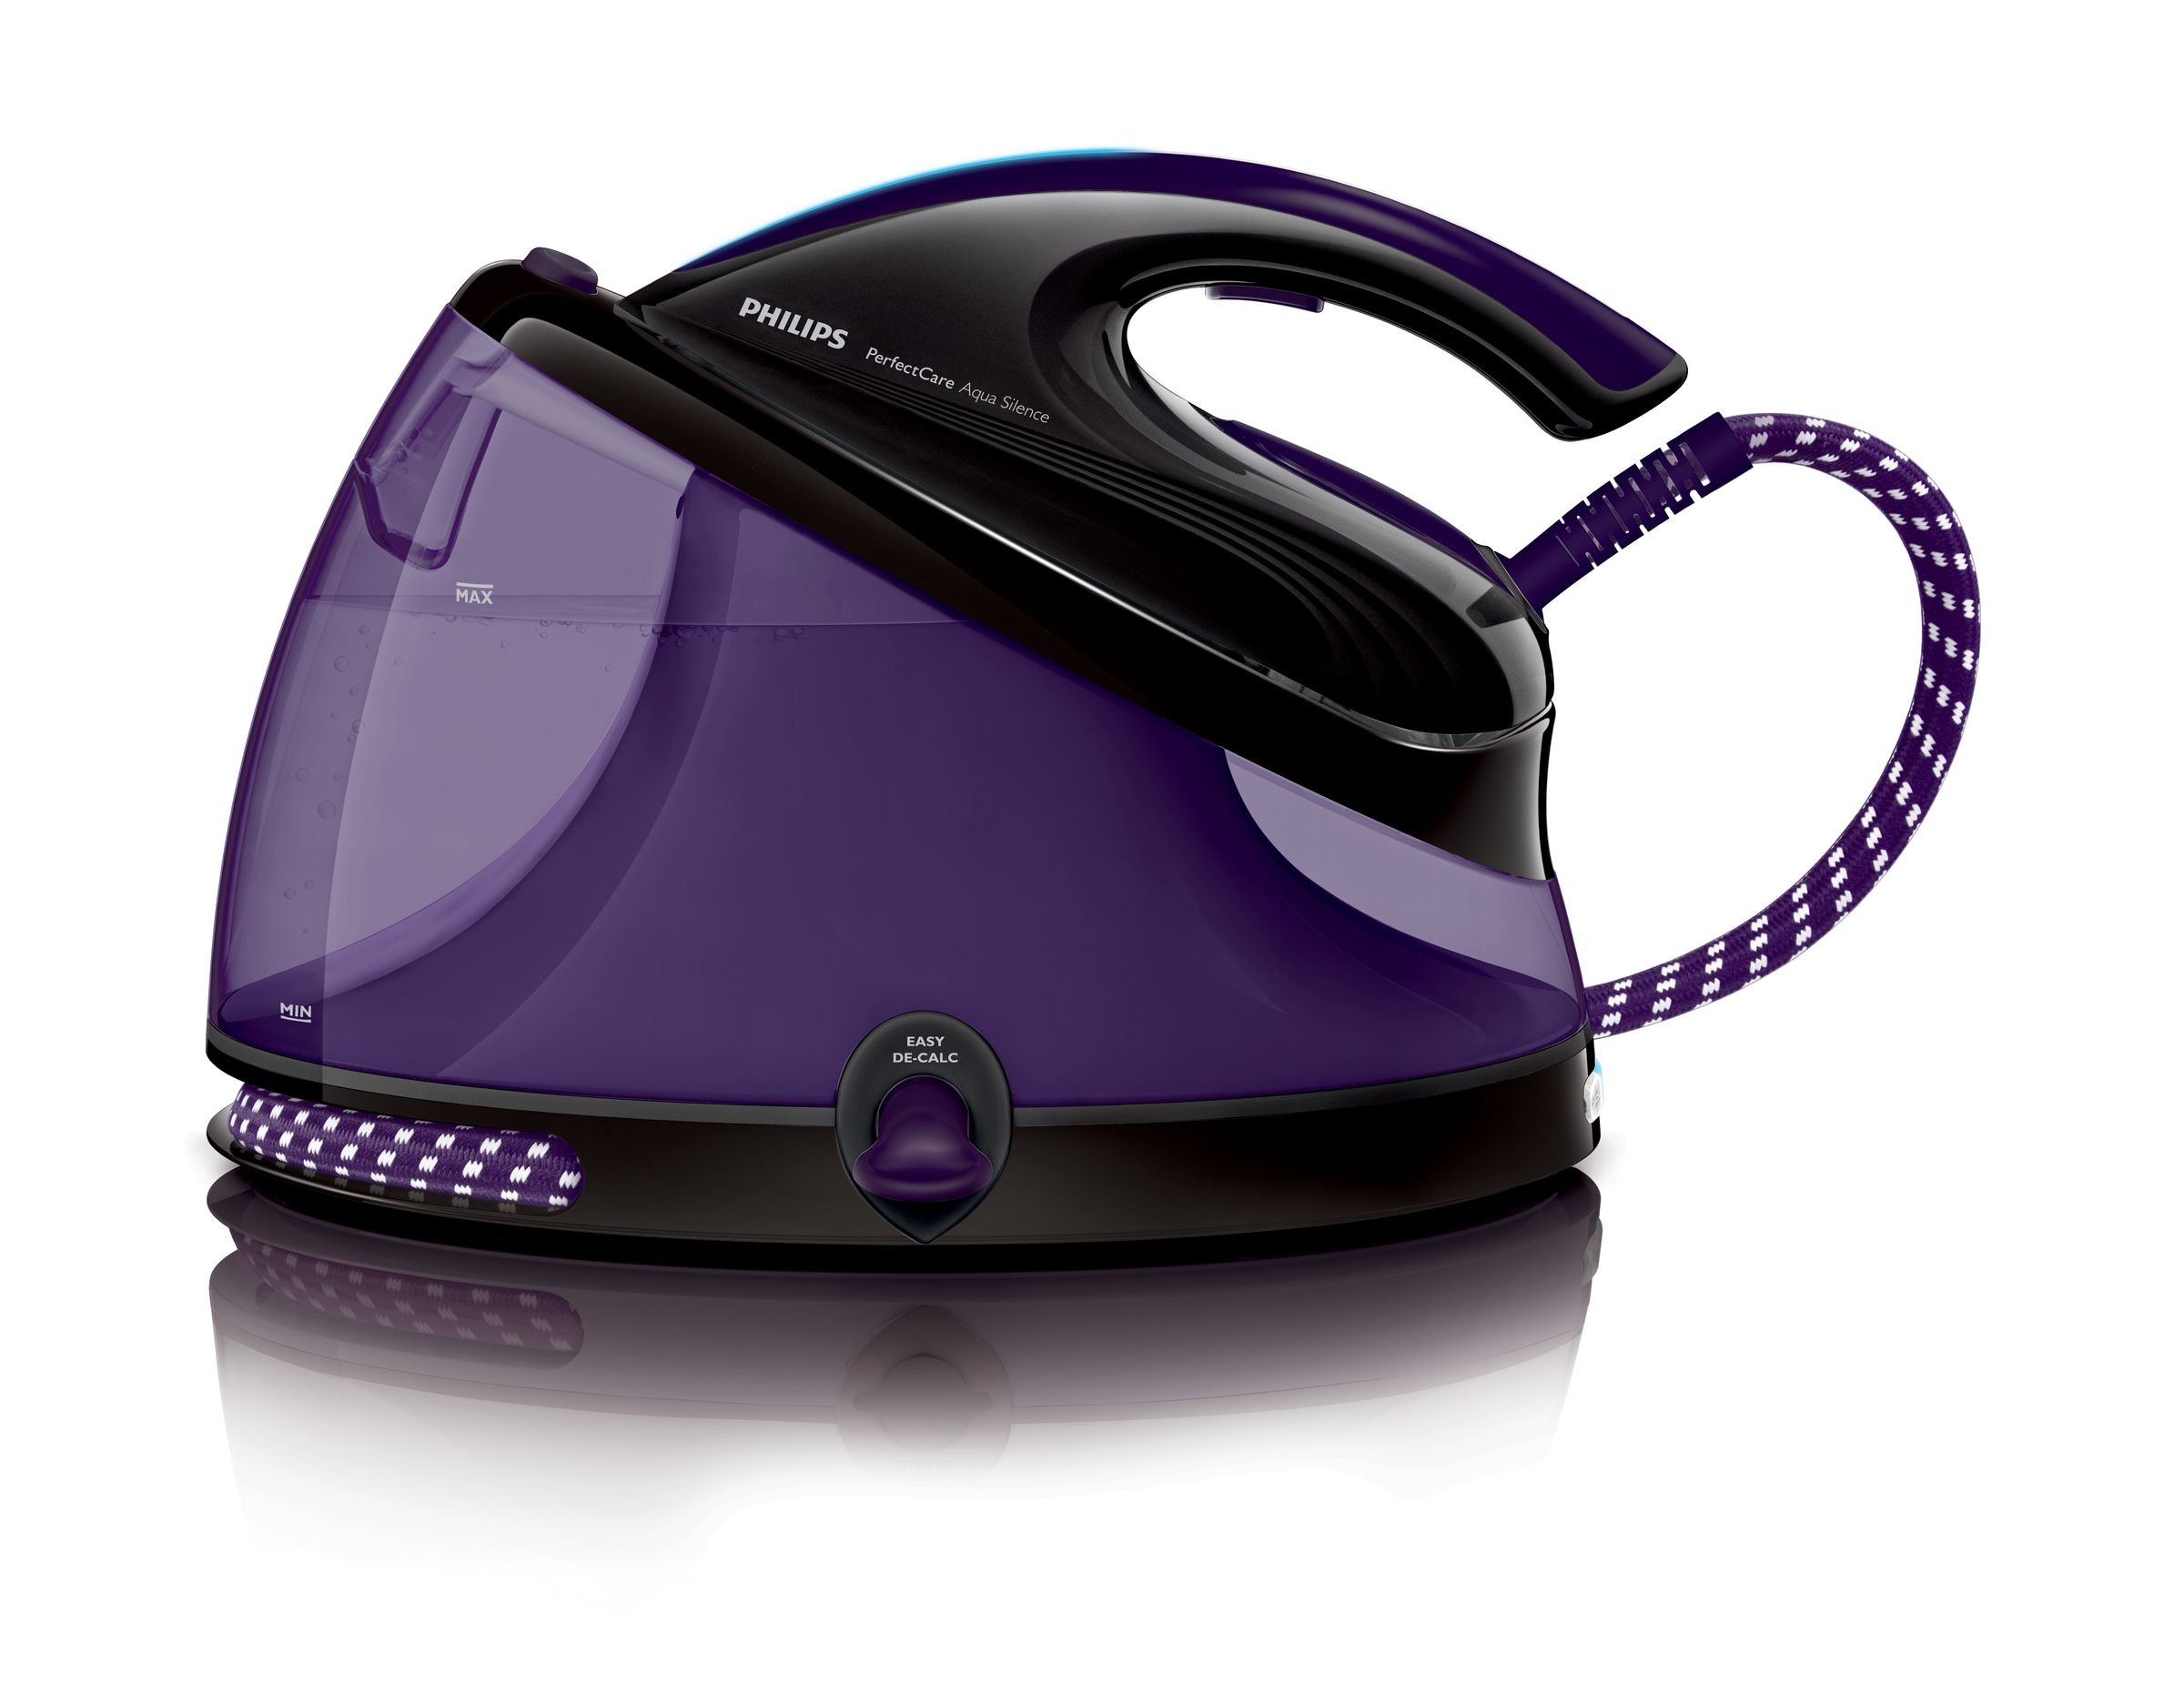 Philips PerfectCare Aqua Silence Steam generator iron